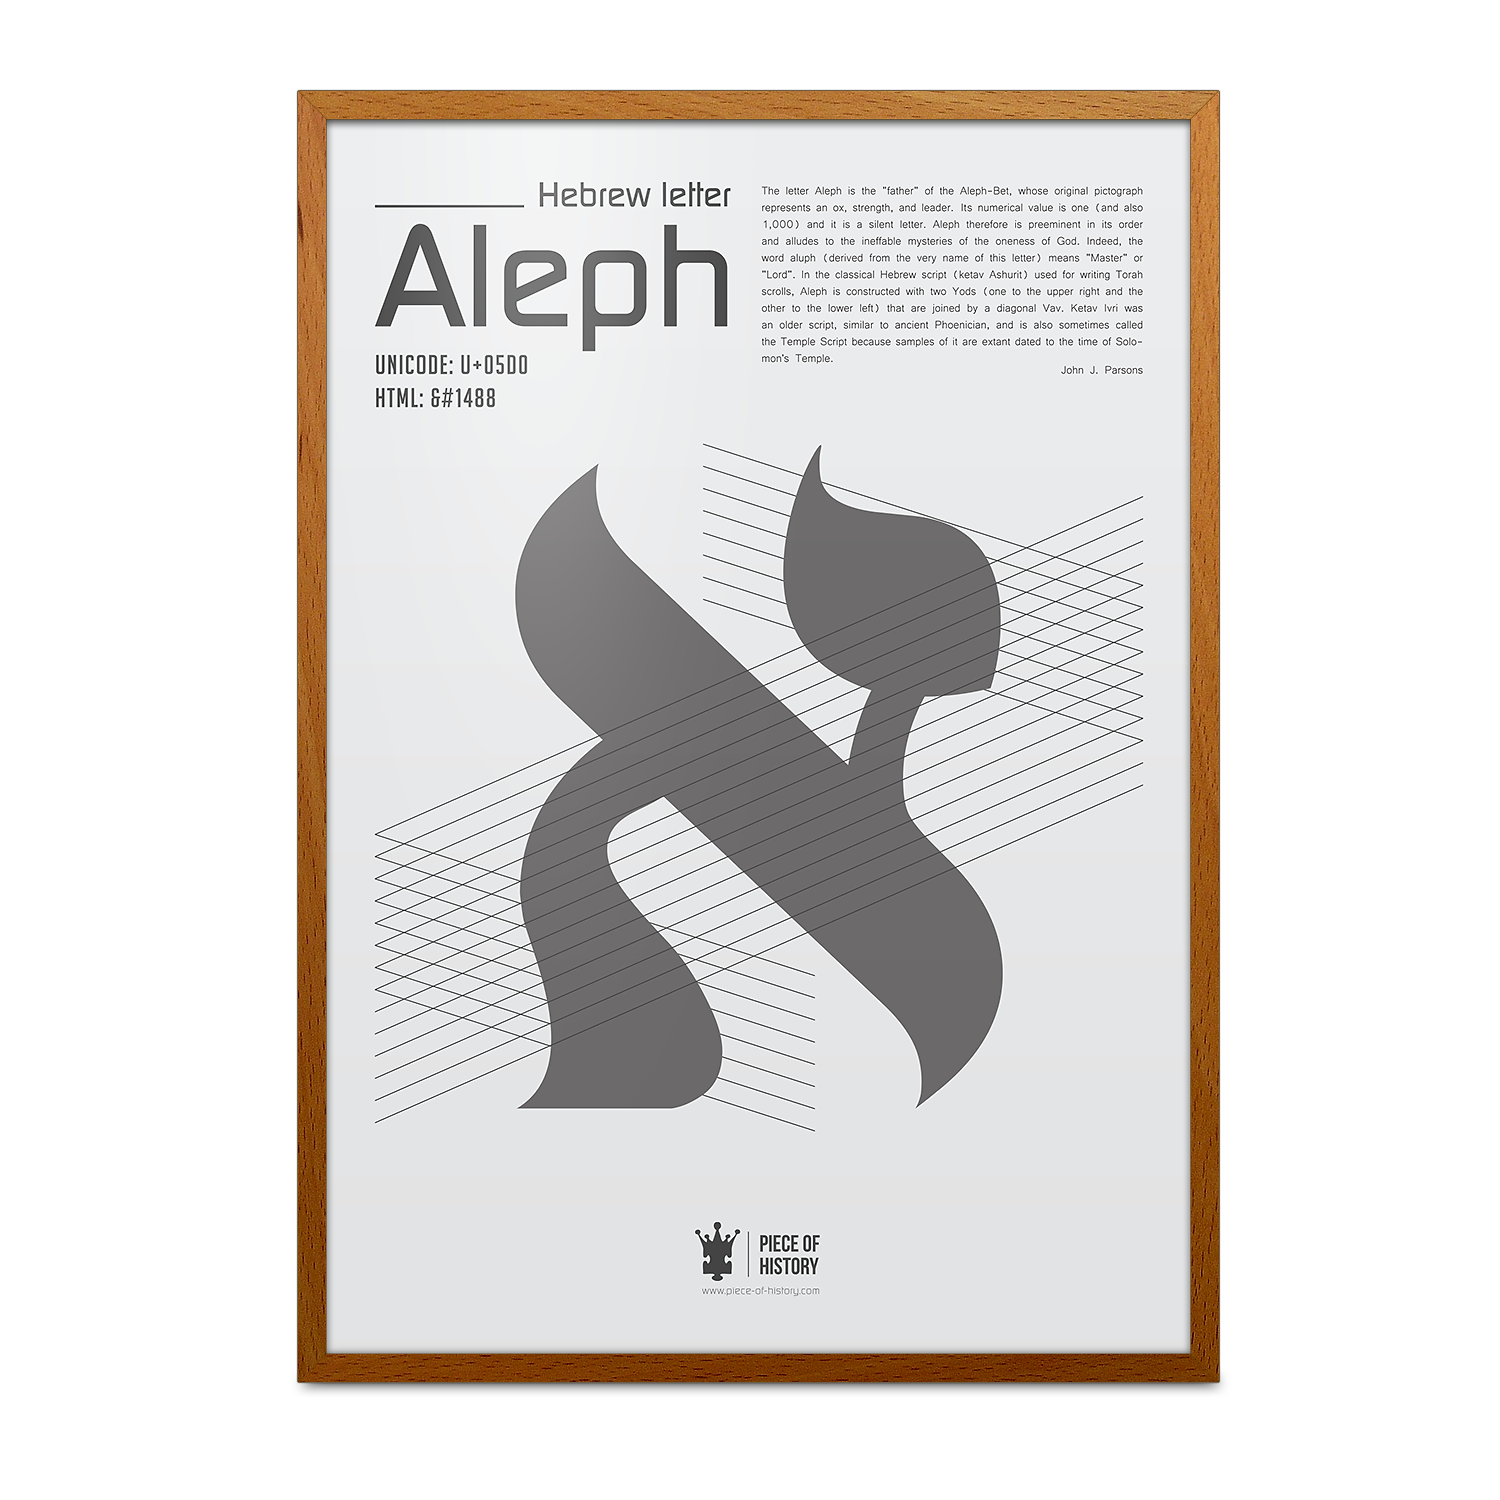 1488 meaning - Aleph A Unique Print From Piece Of History S New Hebrew Typography Series Featuring A Description Of The Ancient Letter S Origin And Meaning